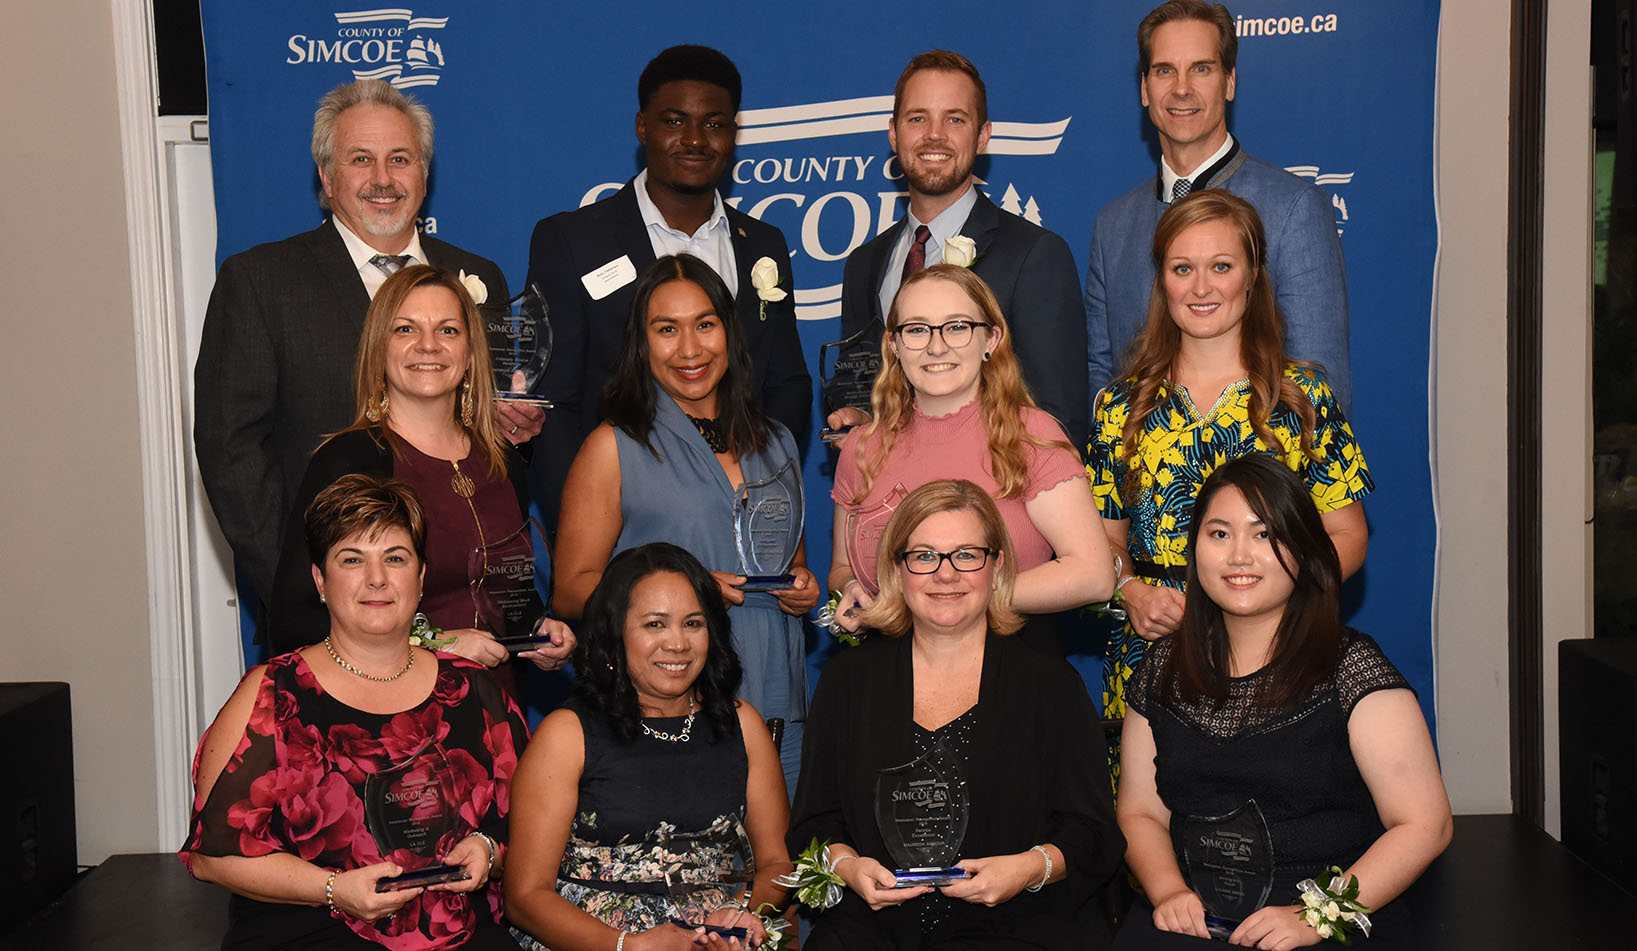 The 12 recipients of the County of Simcoe Newcomer Recognition Awards